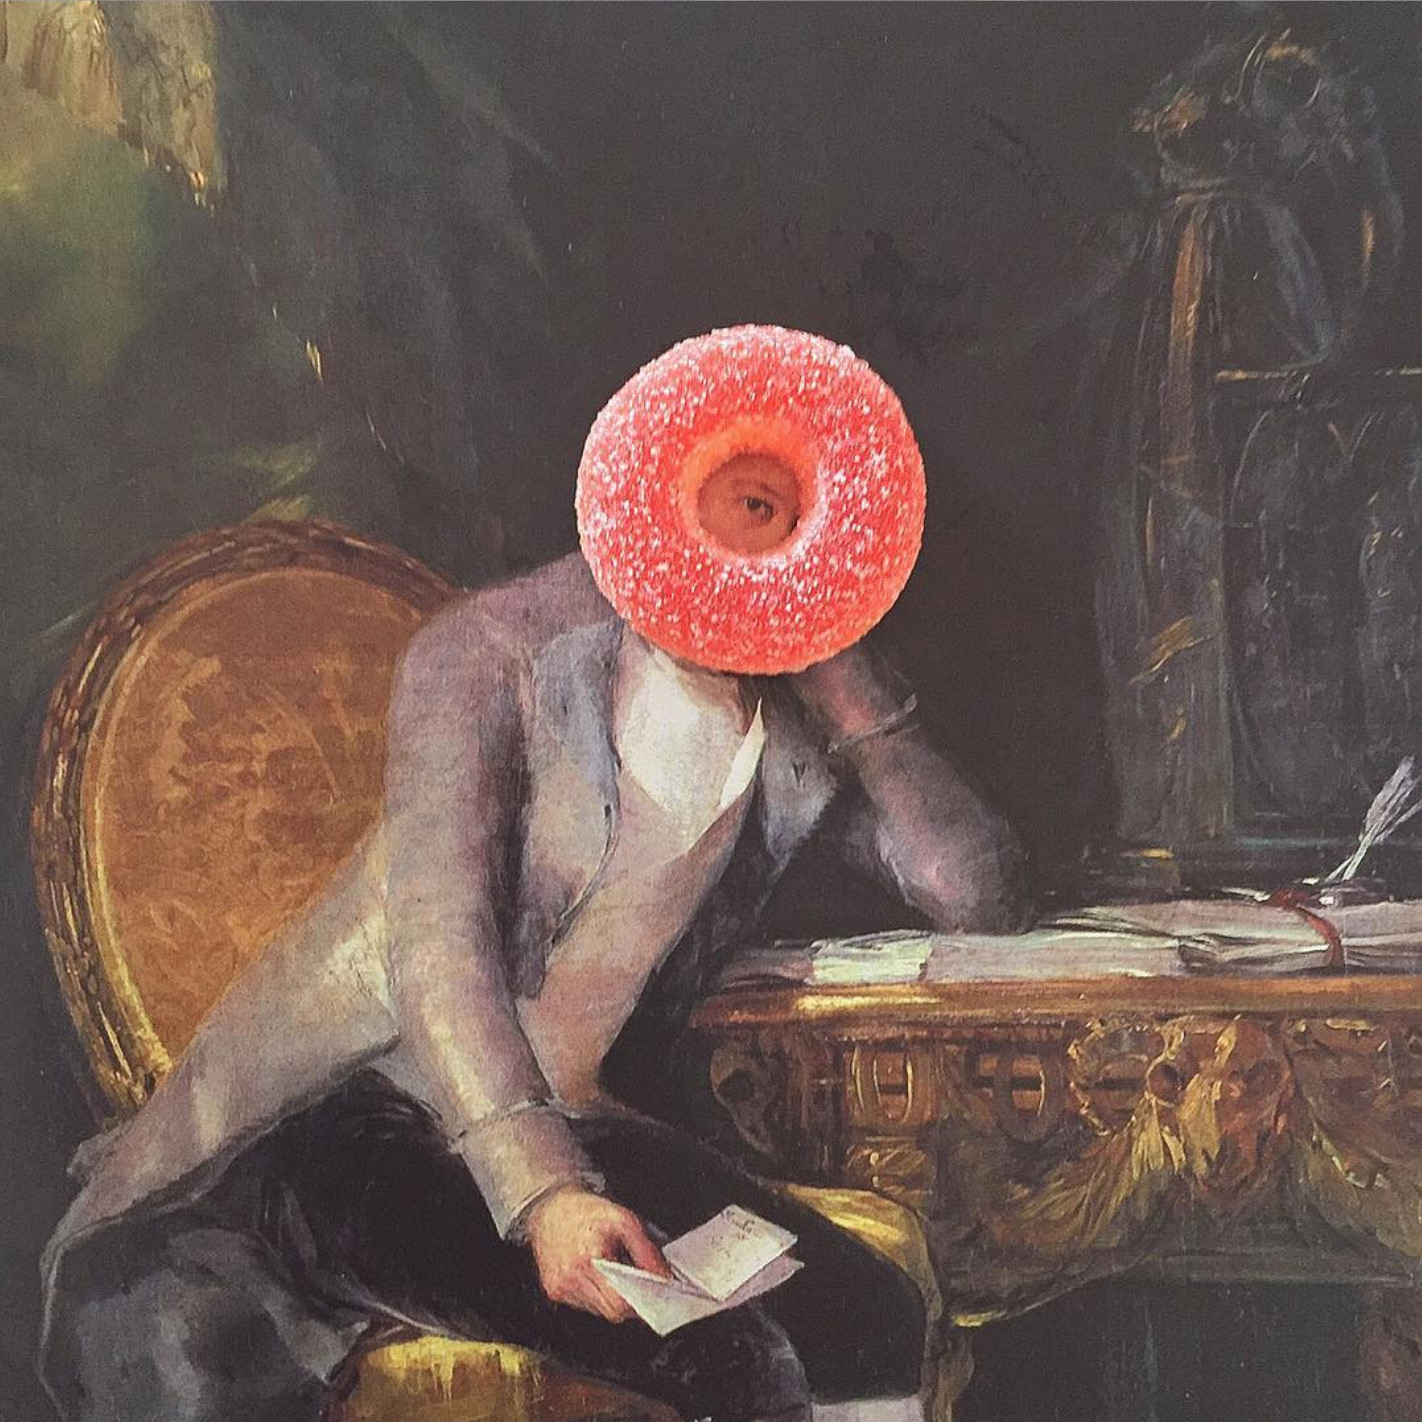 Amusing Instagram of Artworks Decorated With Candy (13 pics)